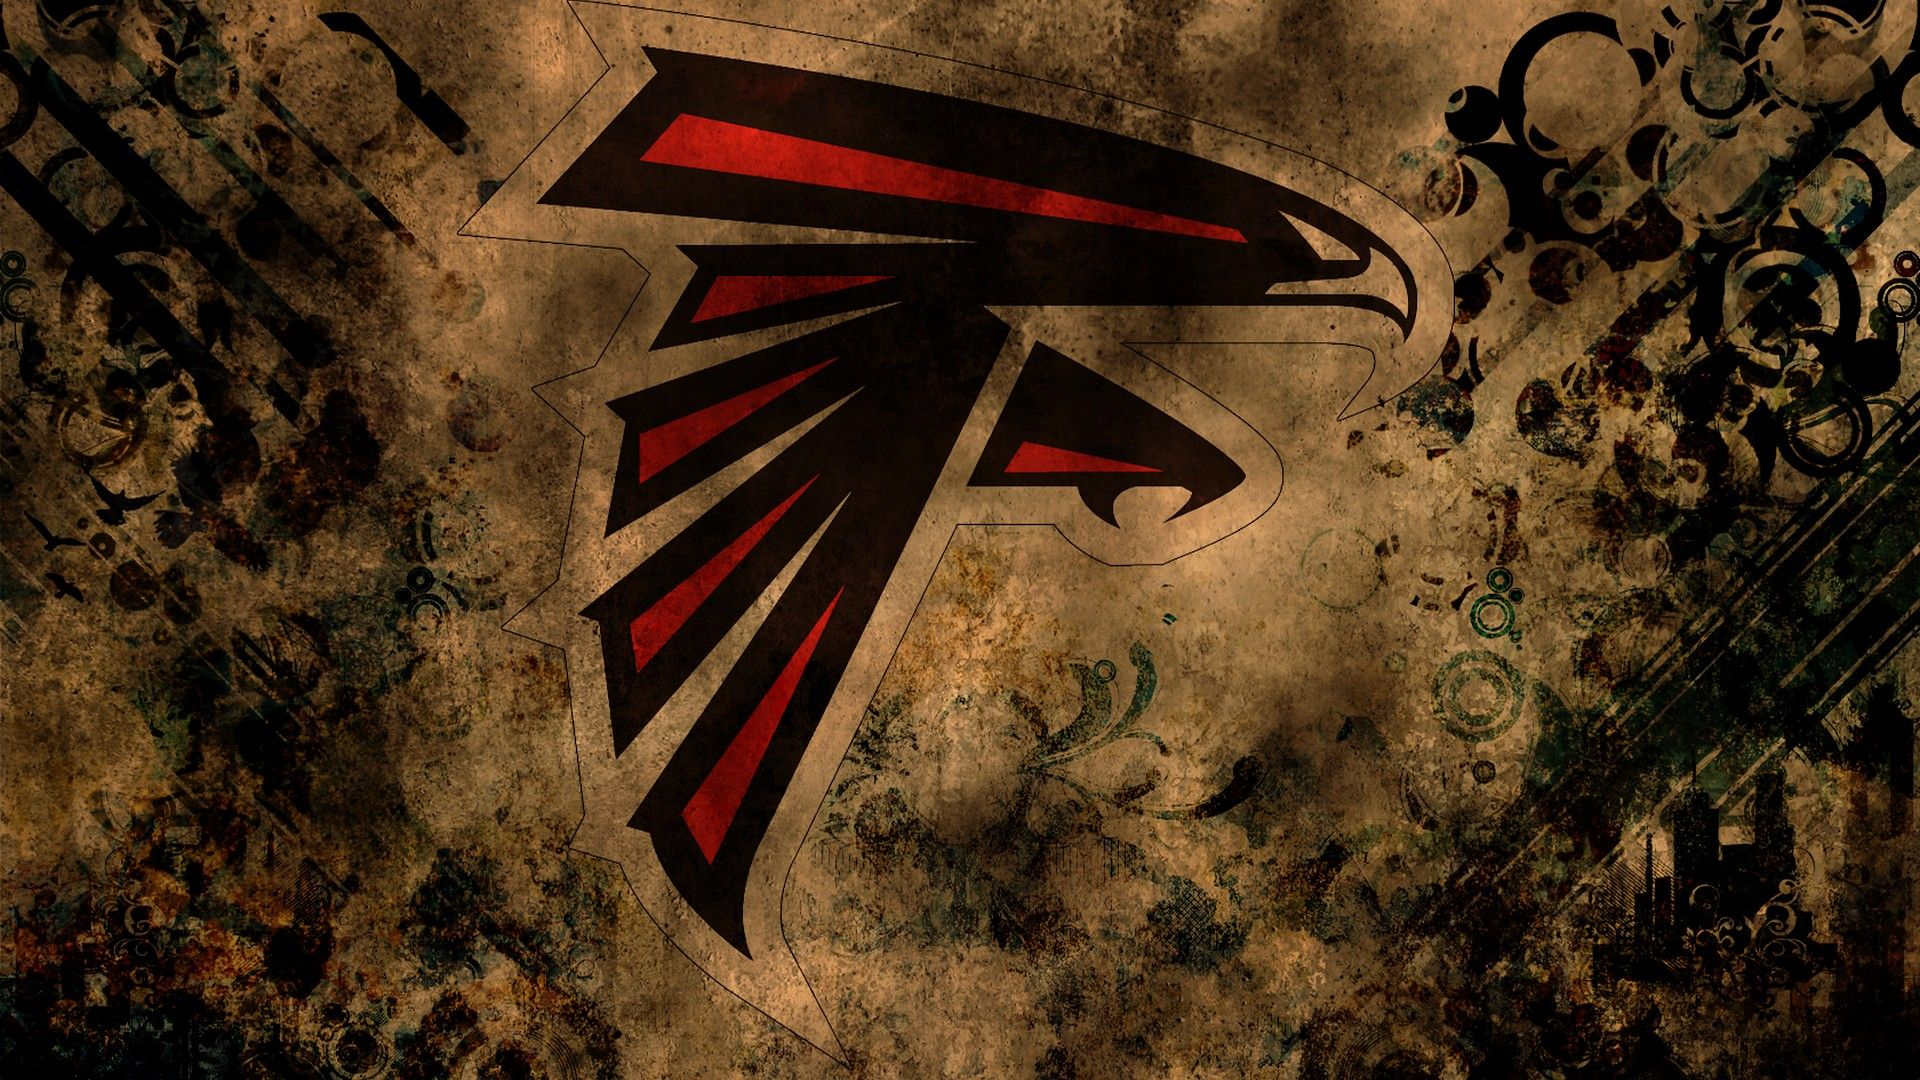 Atlanta Falcons Mac Backgrounds 2020 Nfl Football Wallpapers Hd Wallpaper Wallpaper Atlanta Falcons